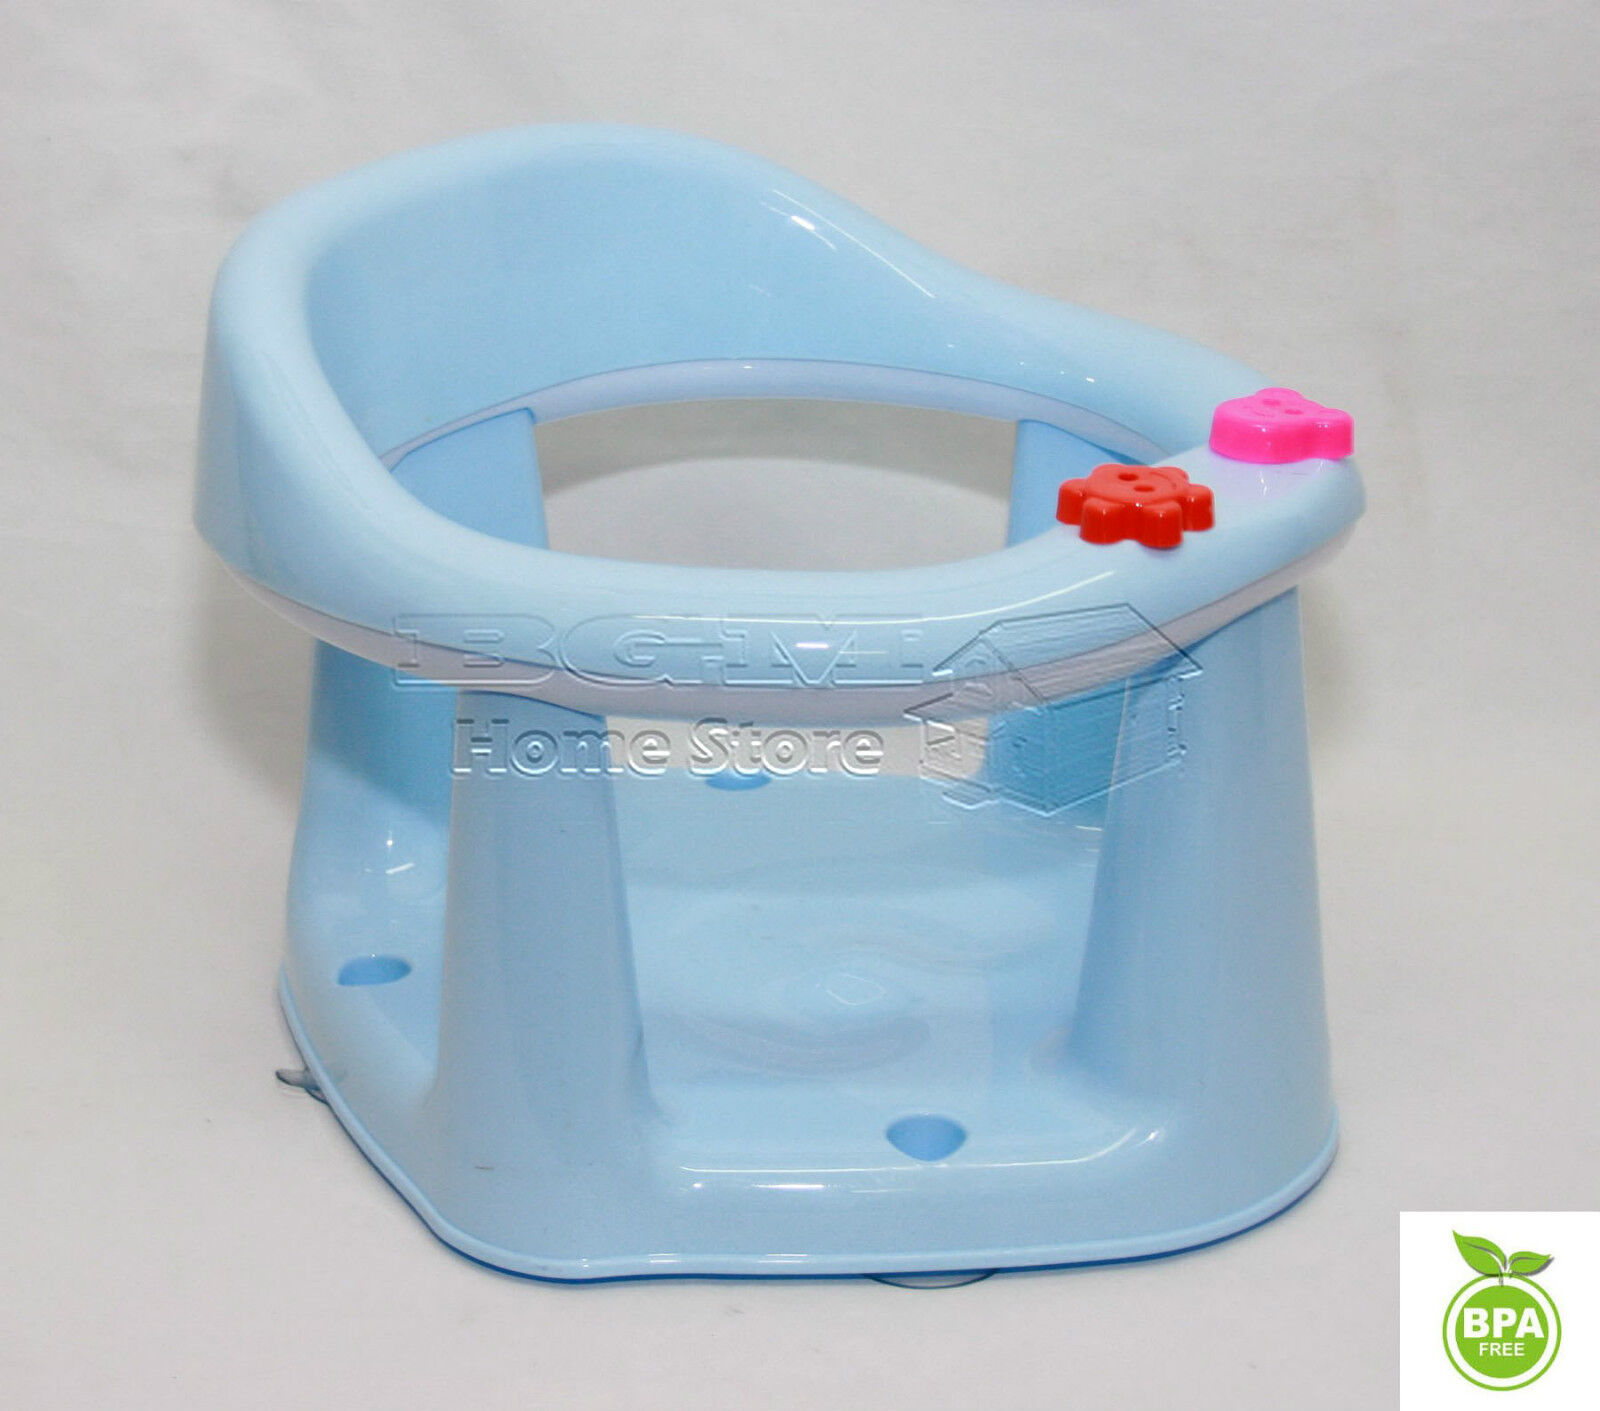 3 in 1 baby bath dining activity play seat kids tub ring seat chair sky blue. Black Bedroom Furniture Sets. Home Design Ideas